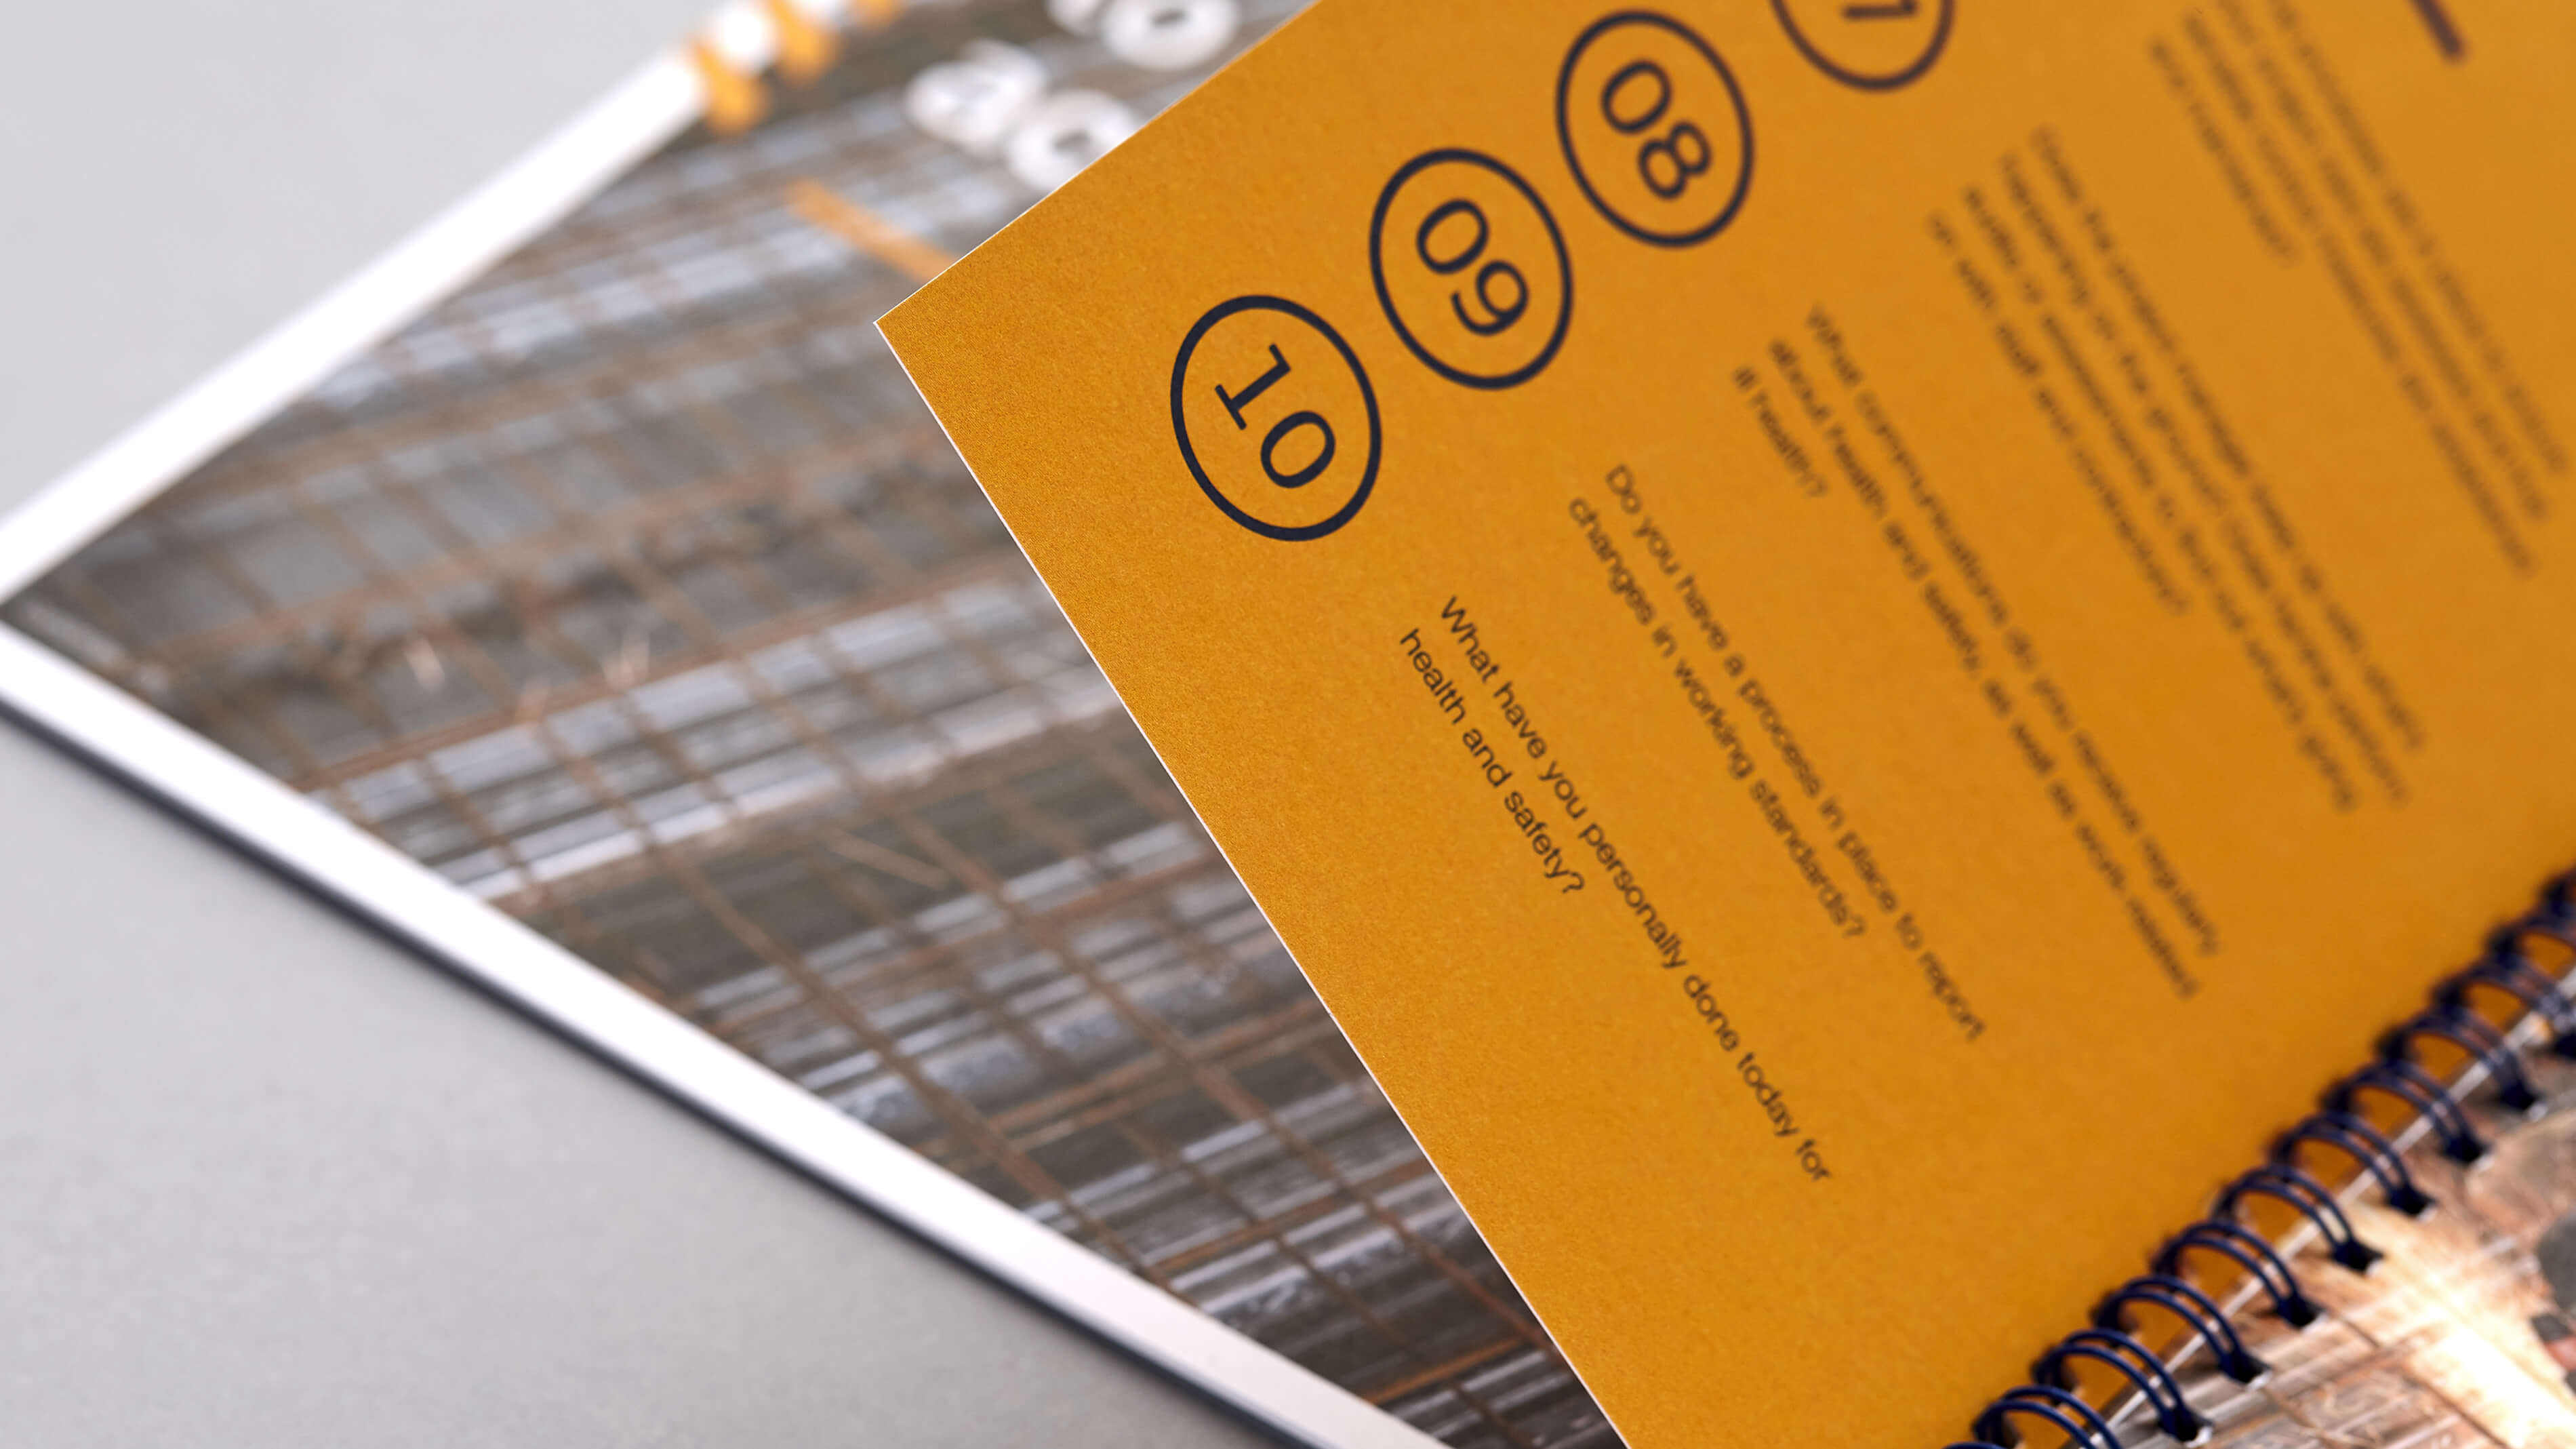 Print design that empowers employees to think safety first